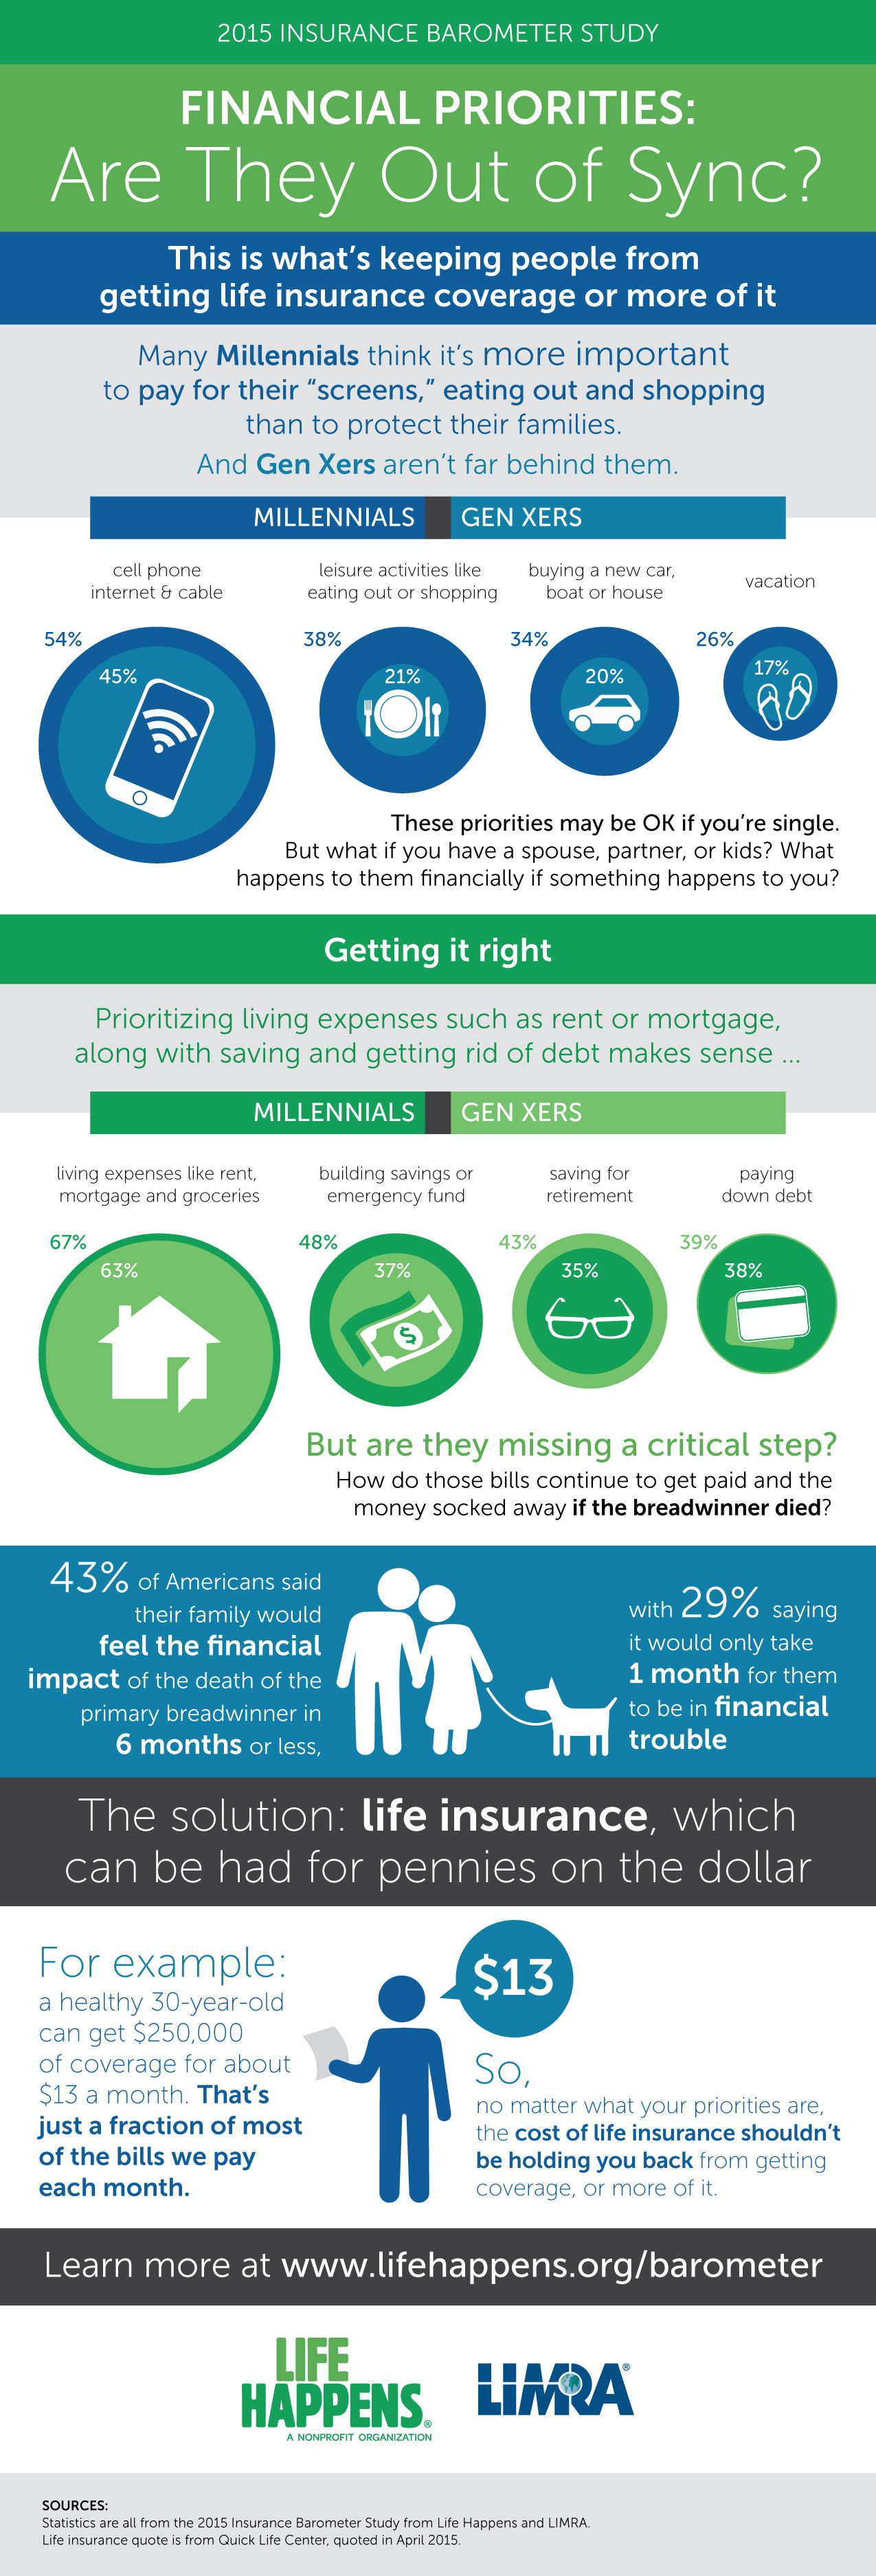 Are your financial priorities out of sync life and